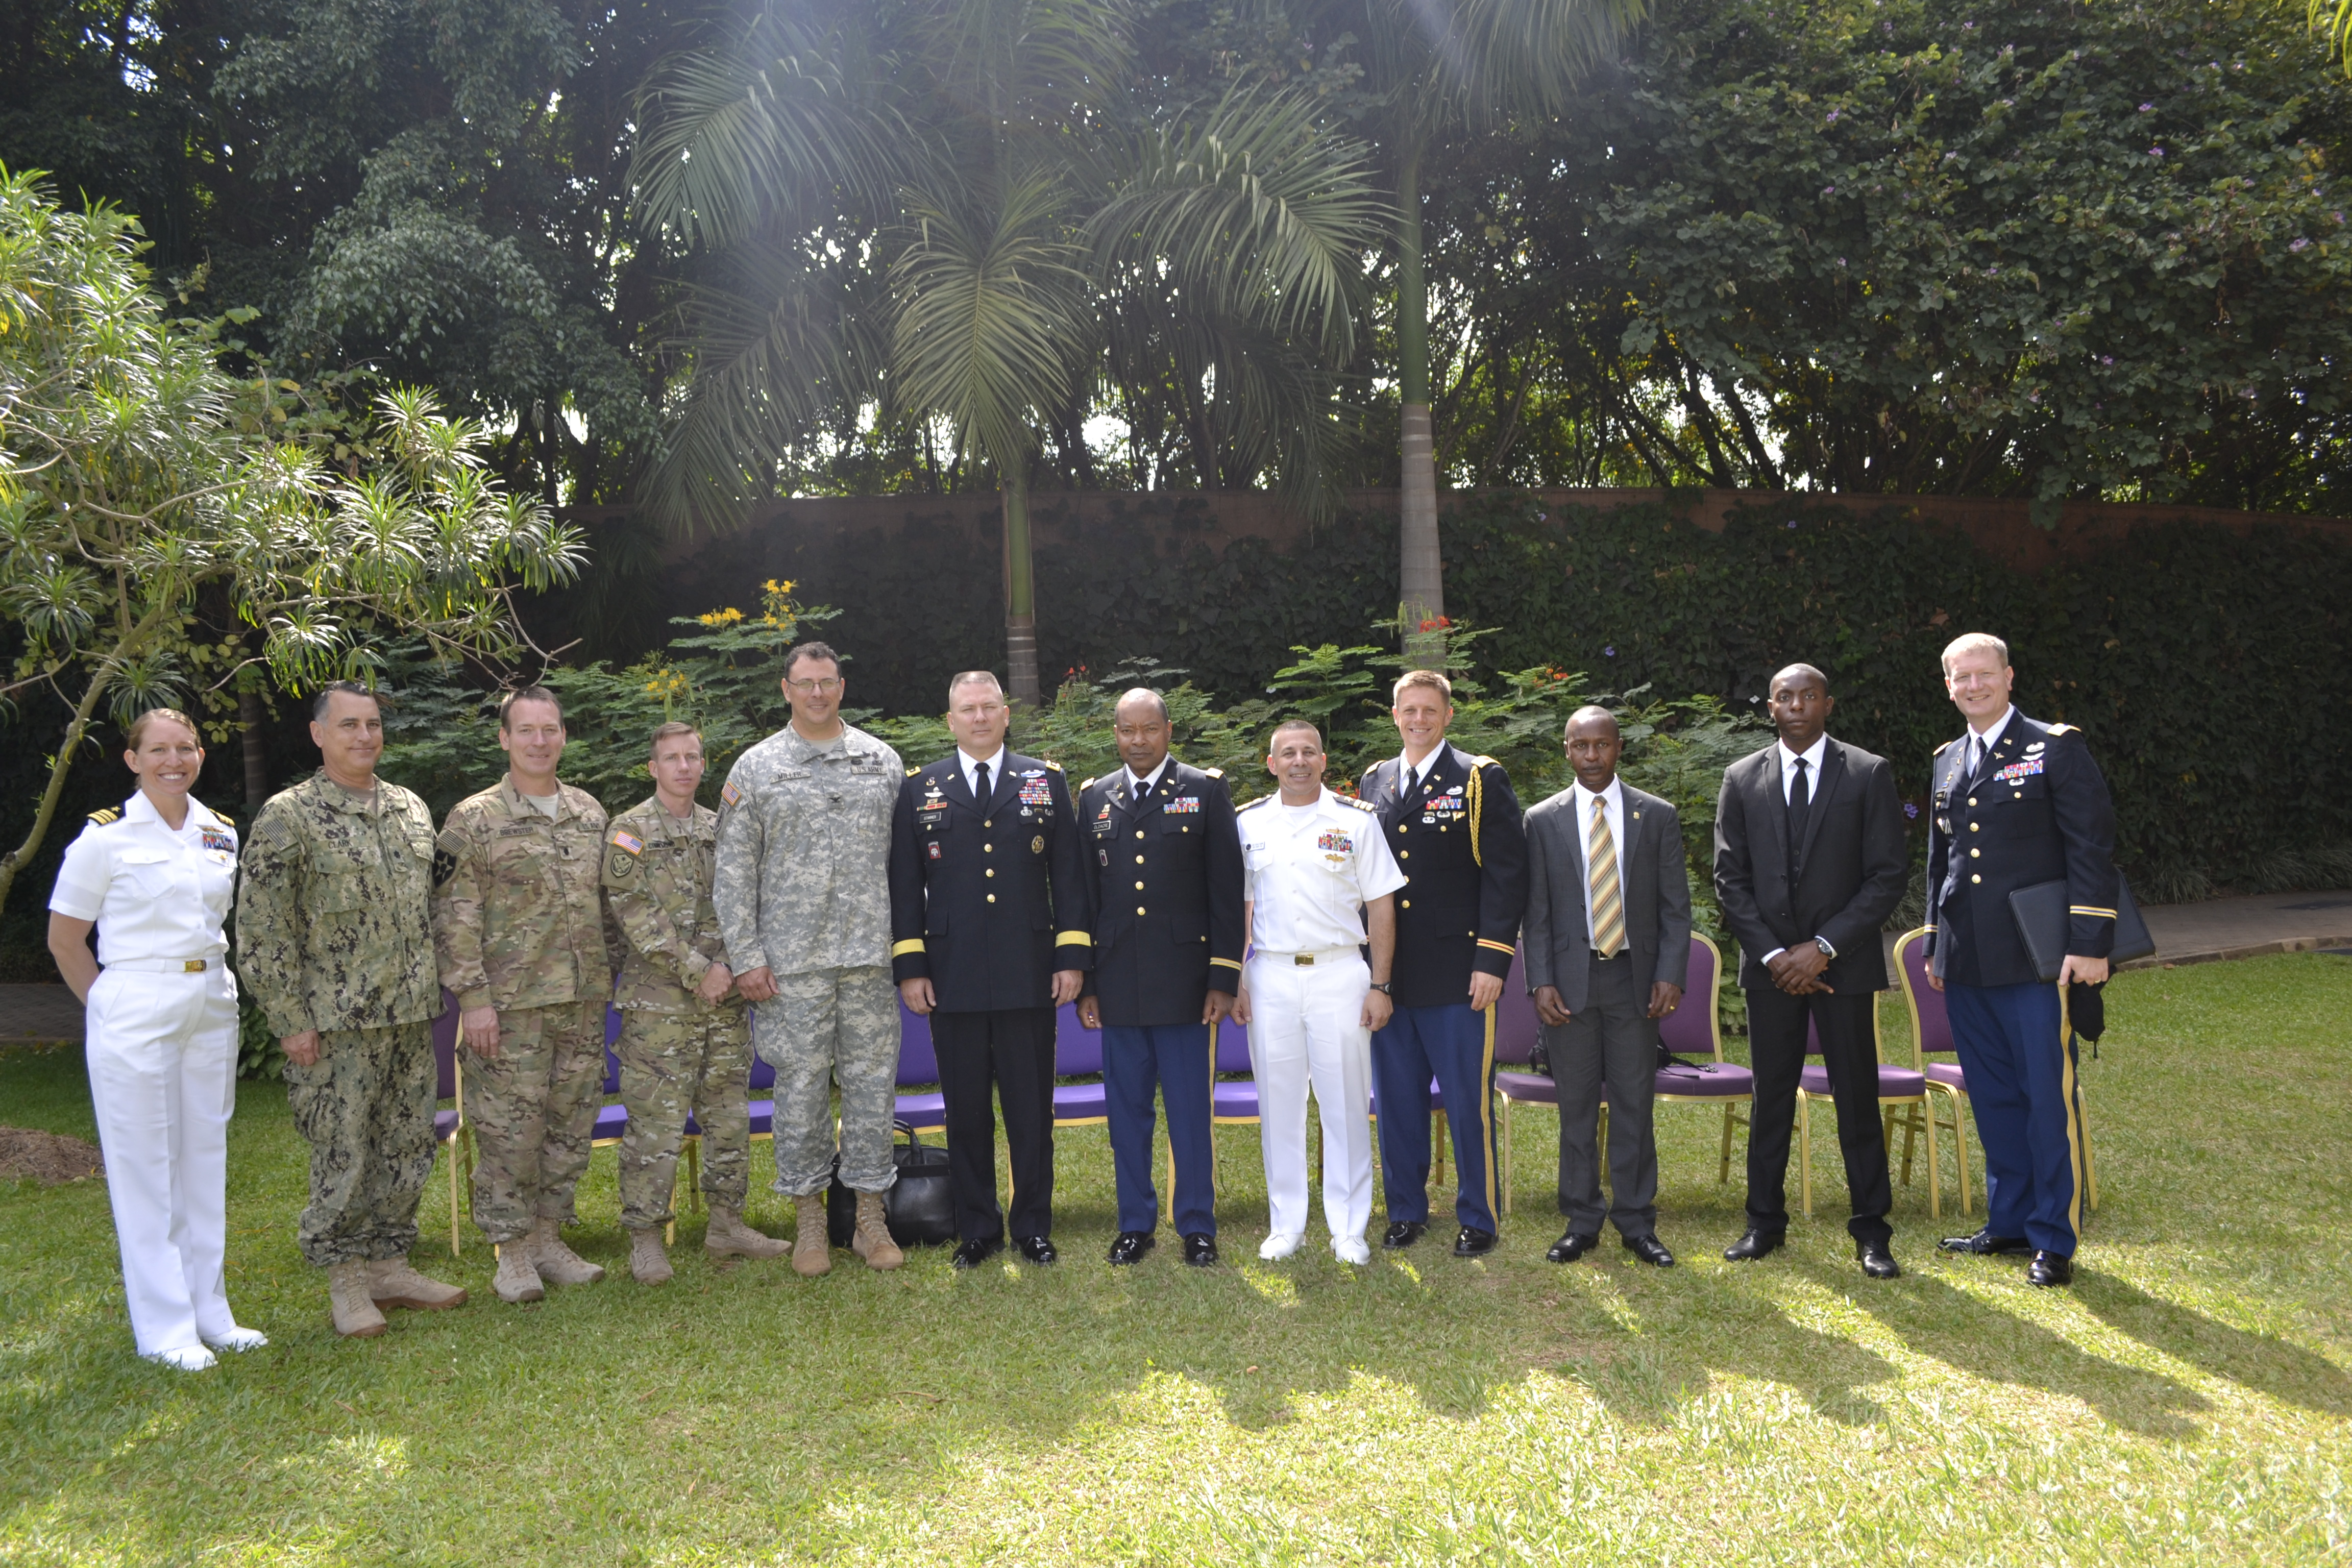 Combined Joint Task Force – Horn of Africa group photo during the Africa Center for Strategic Studies Managing Security Resources in Africa Seminar, Kampala, Uganda. (CJTF-HOA photo, Released)